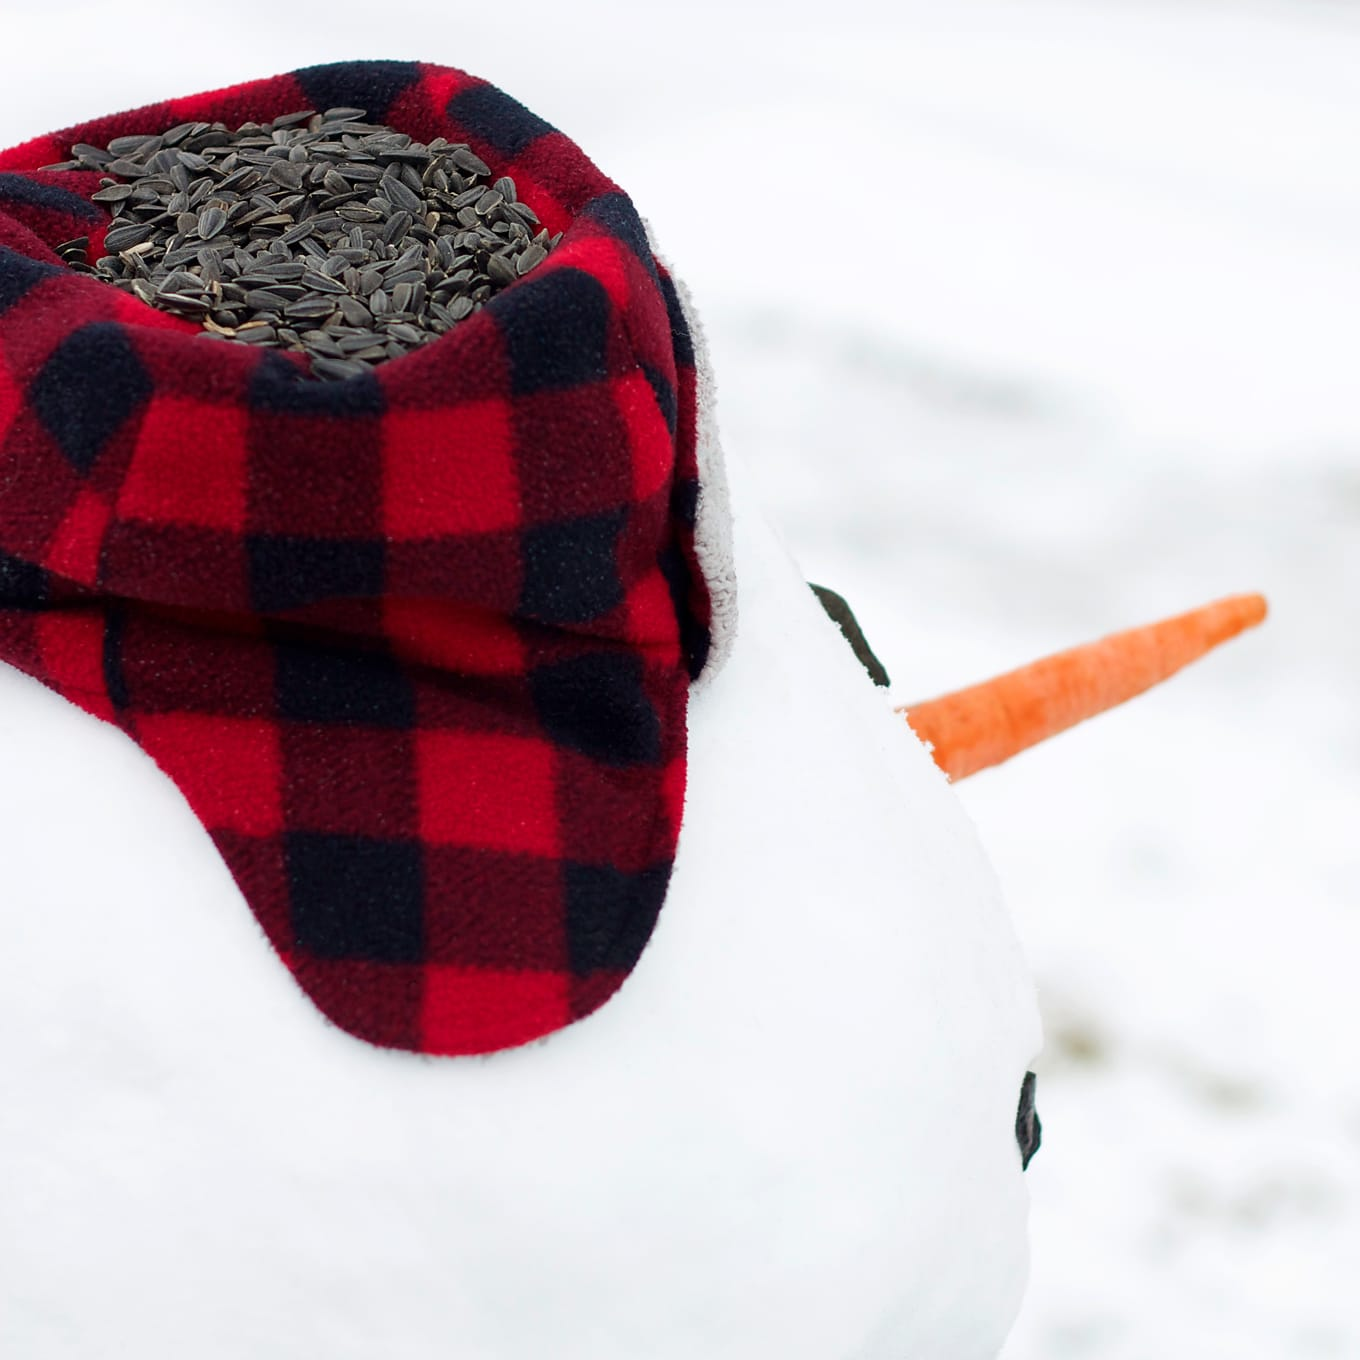 Snowman Wearing Plaid Hat Filled with Bird Seed